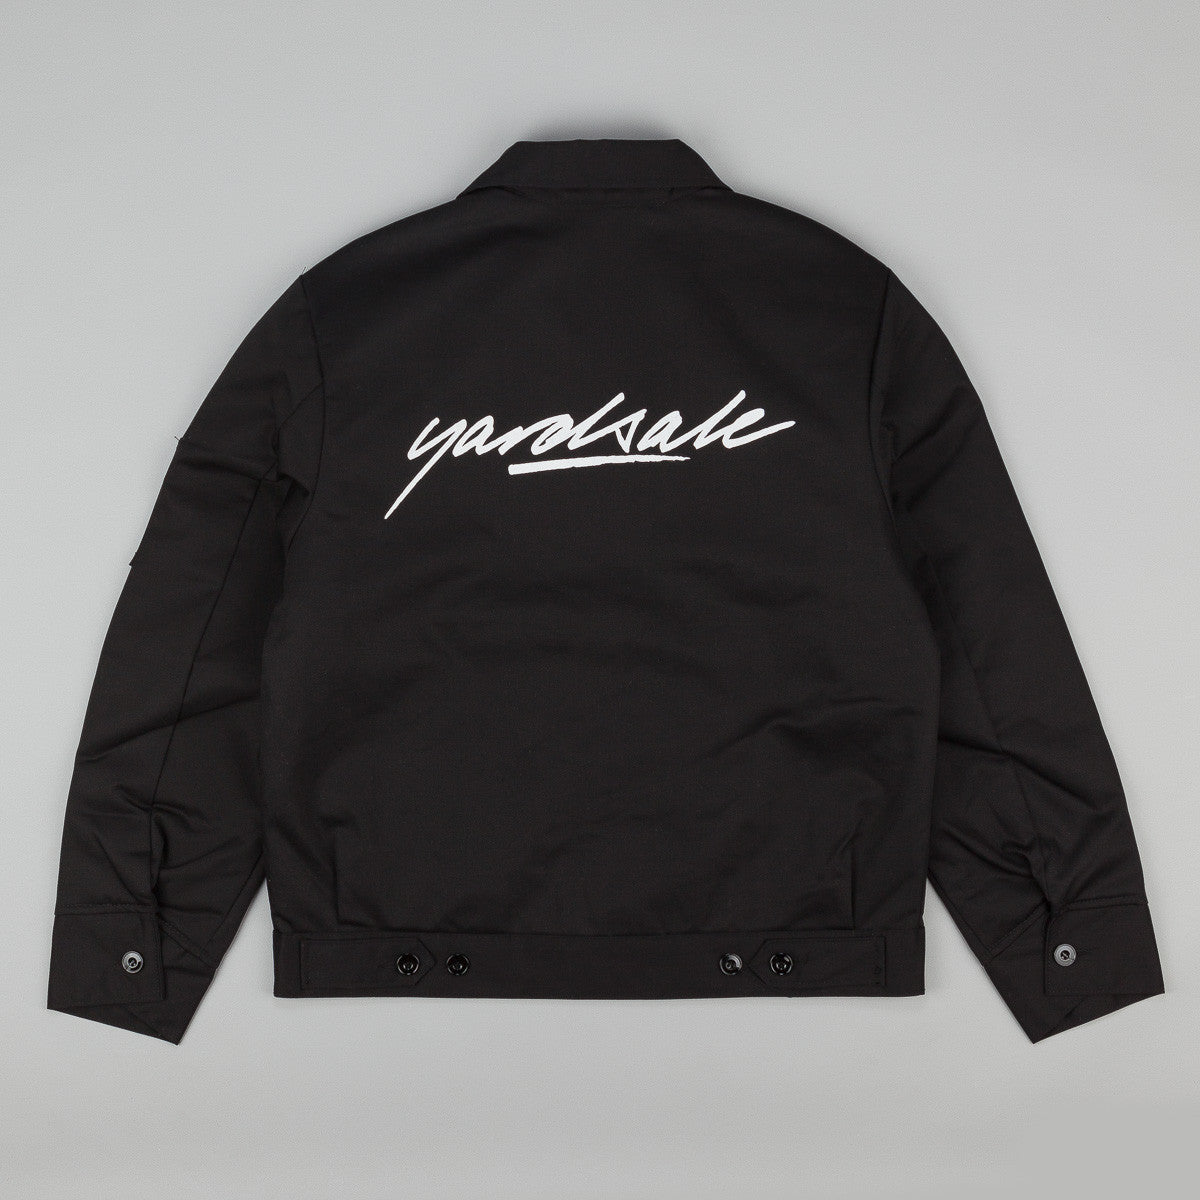 Dickies X Yardsale Lined Eisenhower Jacket - Black